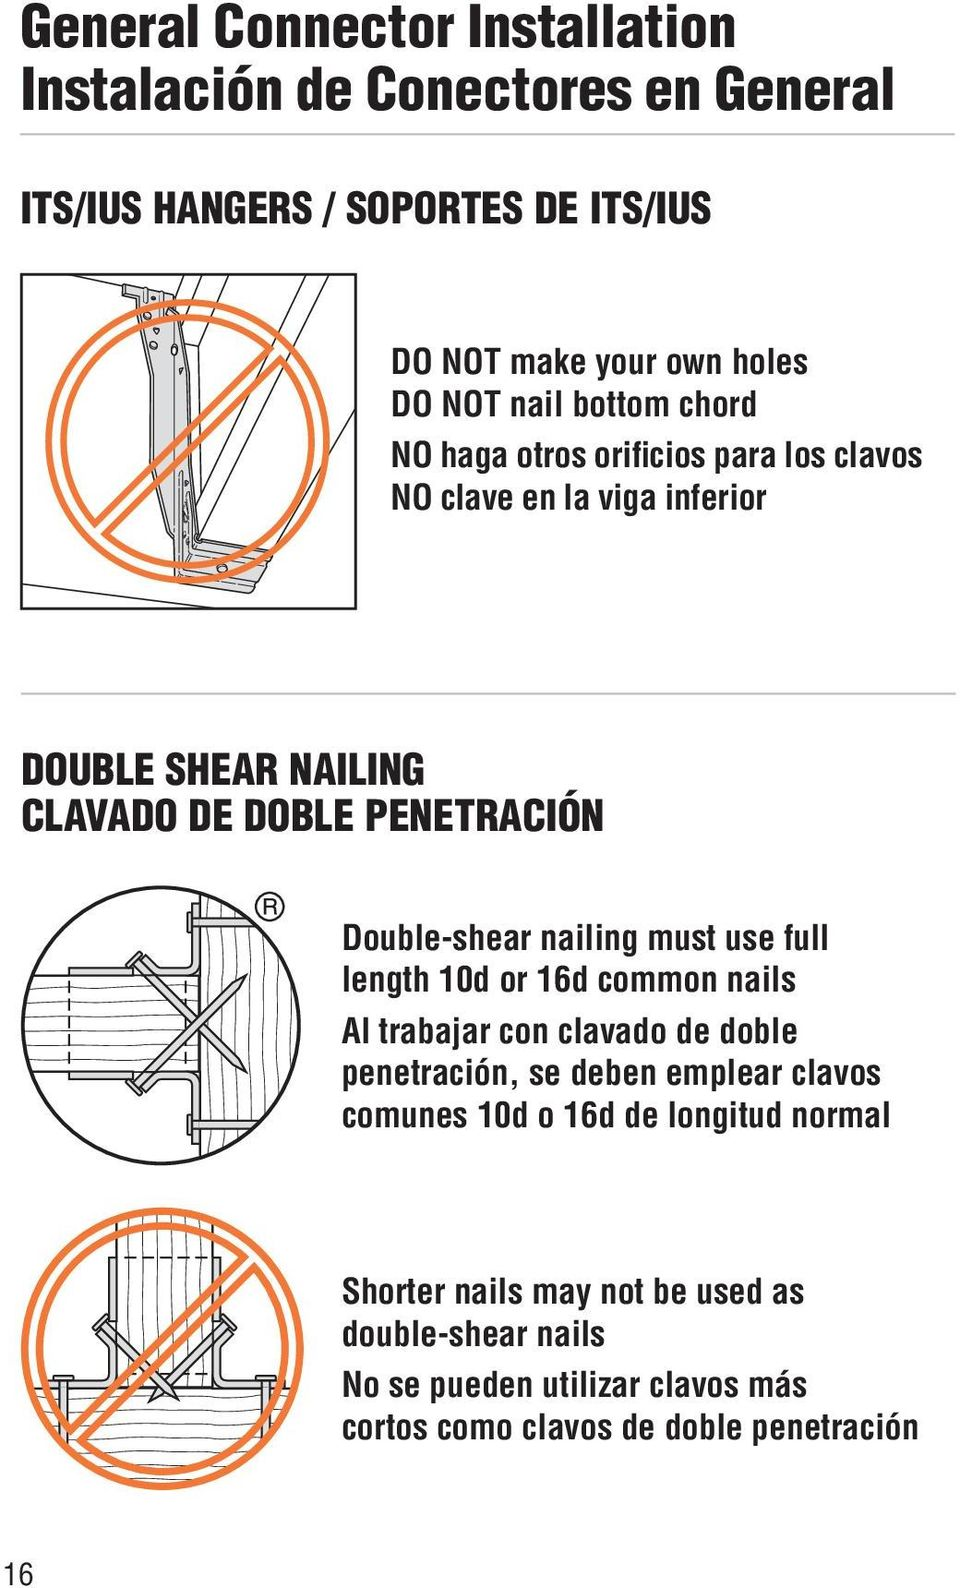 Double-shear nailing must use full length 0d or 6d common nails Al trabajar con clavado de doble penetración, se deben emplear clavos comunes